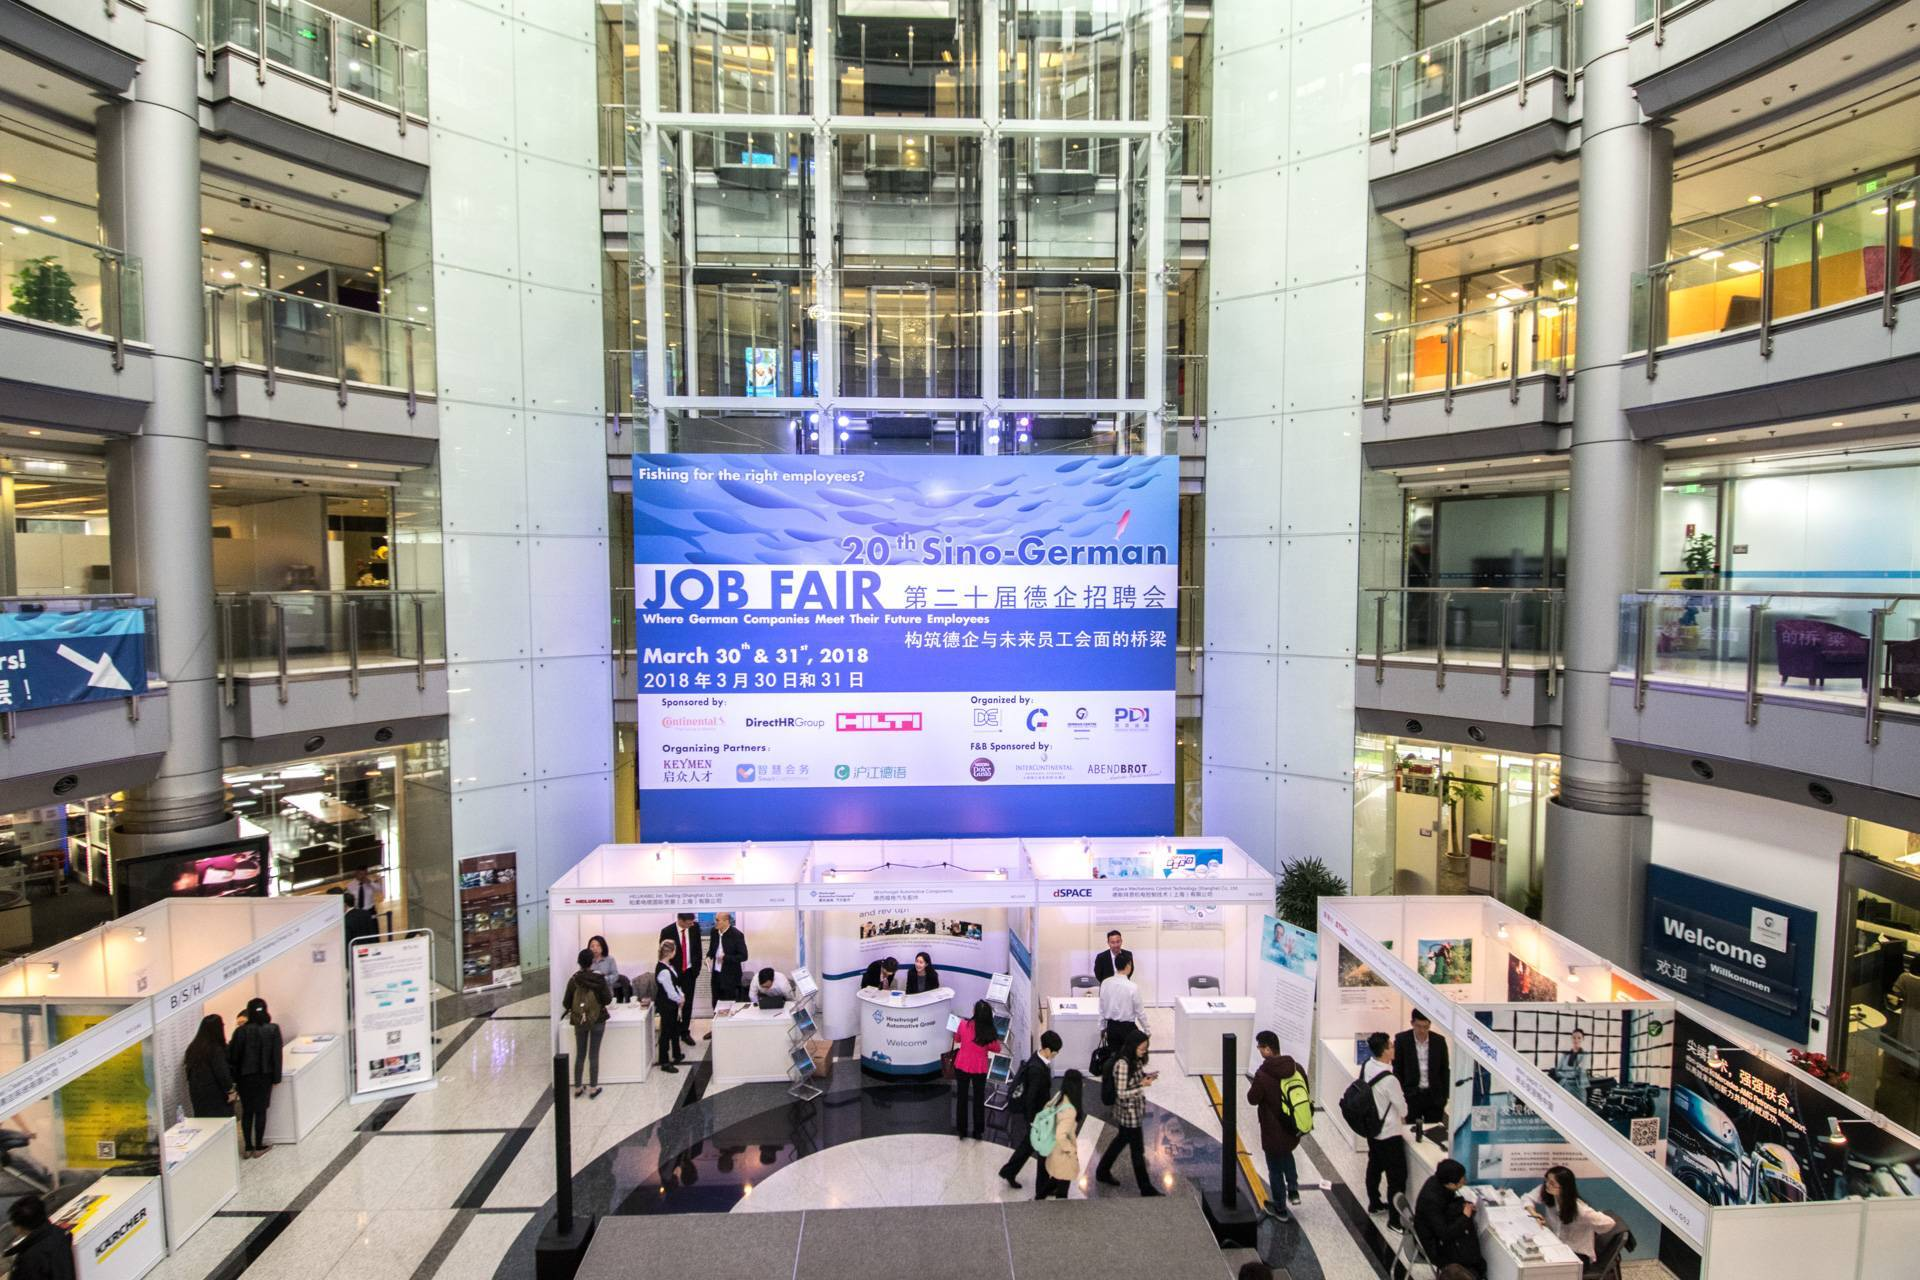 The 20th Sino-German Job Fair